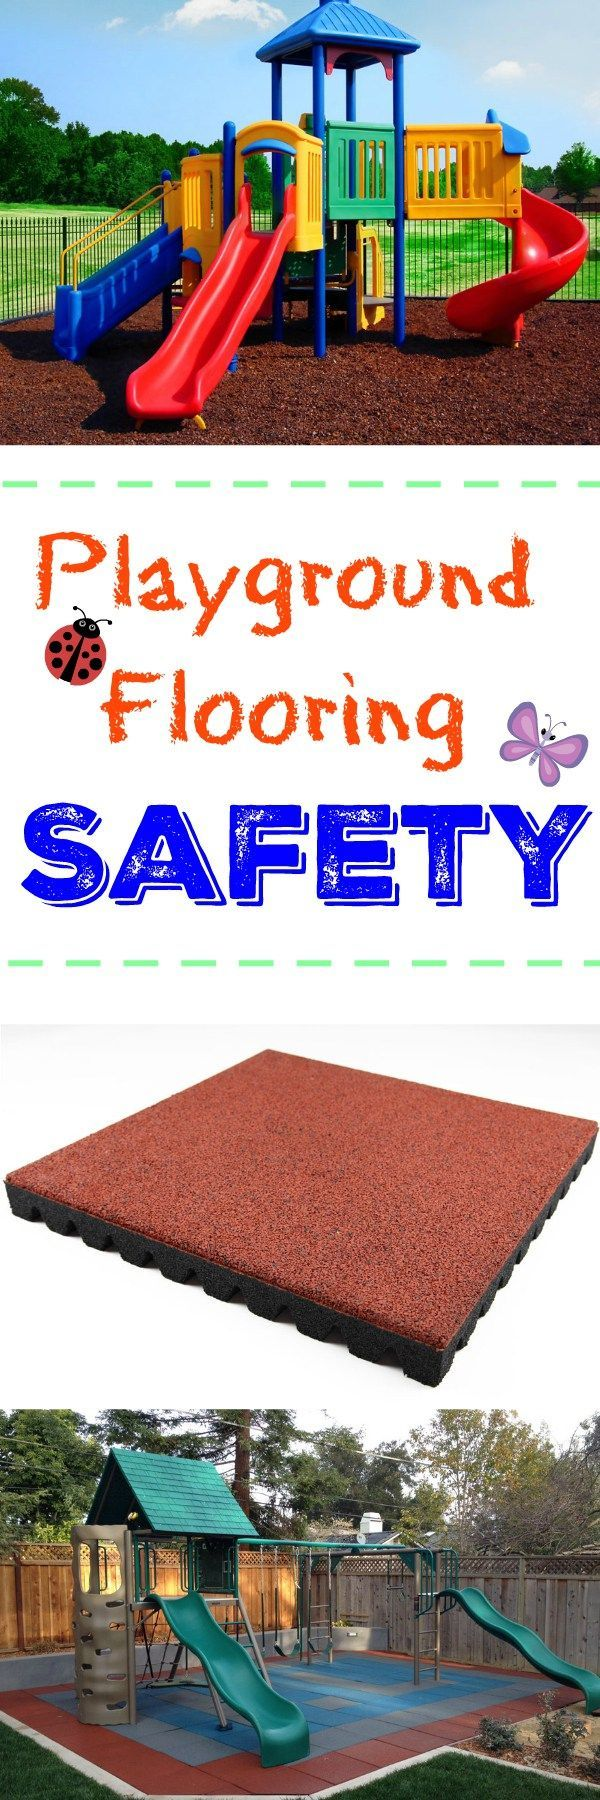 Playground Flooring Safety: Make sure your playground is safe and fall height safety rated with this all inclusive guide to playground flooring safety. Learn the surfaces to avoid and the appropriate tiles, mats and mulch that will keep your kids safe and your mind at ease.